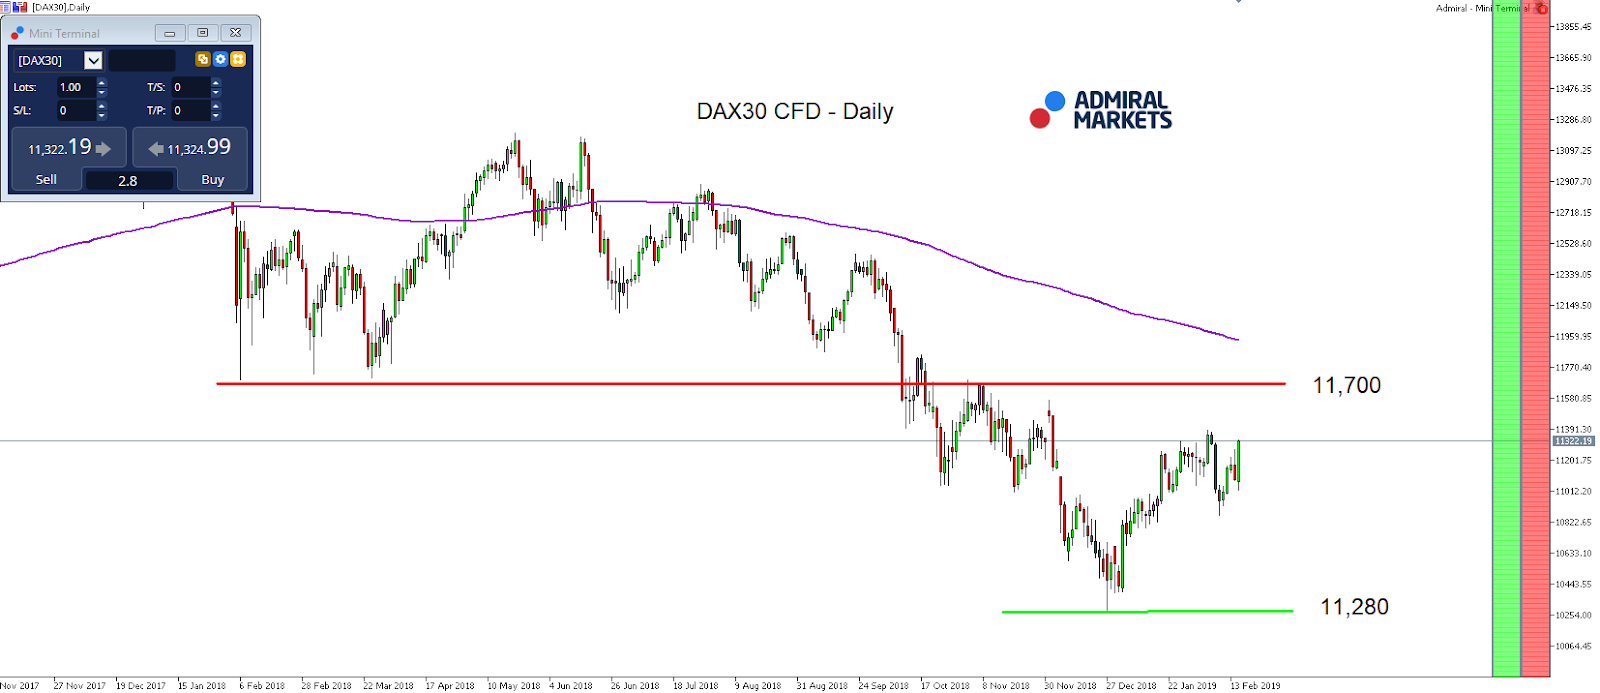 DAX 30 CFD index daily chart